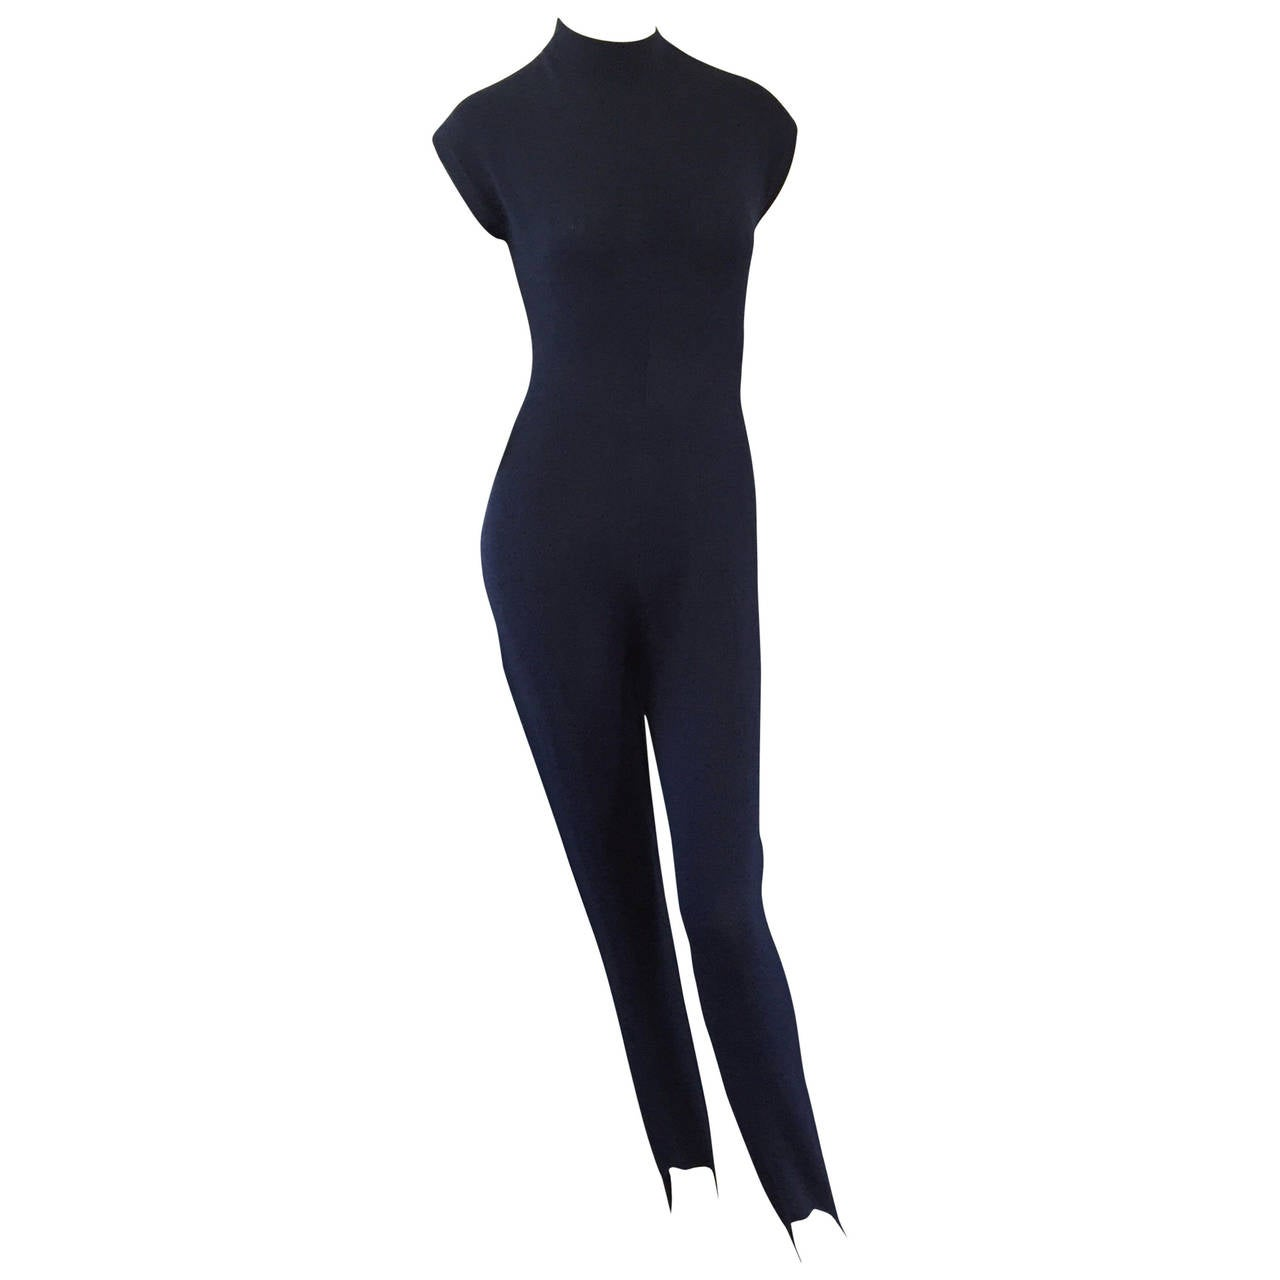 Vintage St. John by Marie Gray Navy Blue Santana Knit Jumpsuit w/ Stirrup Pants